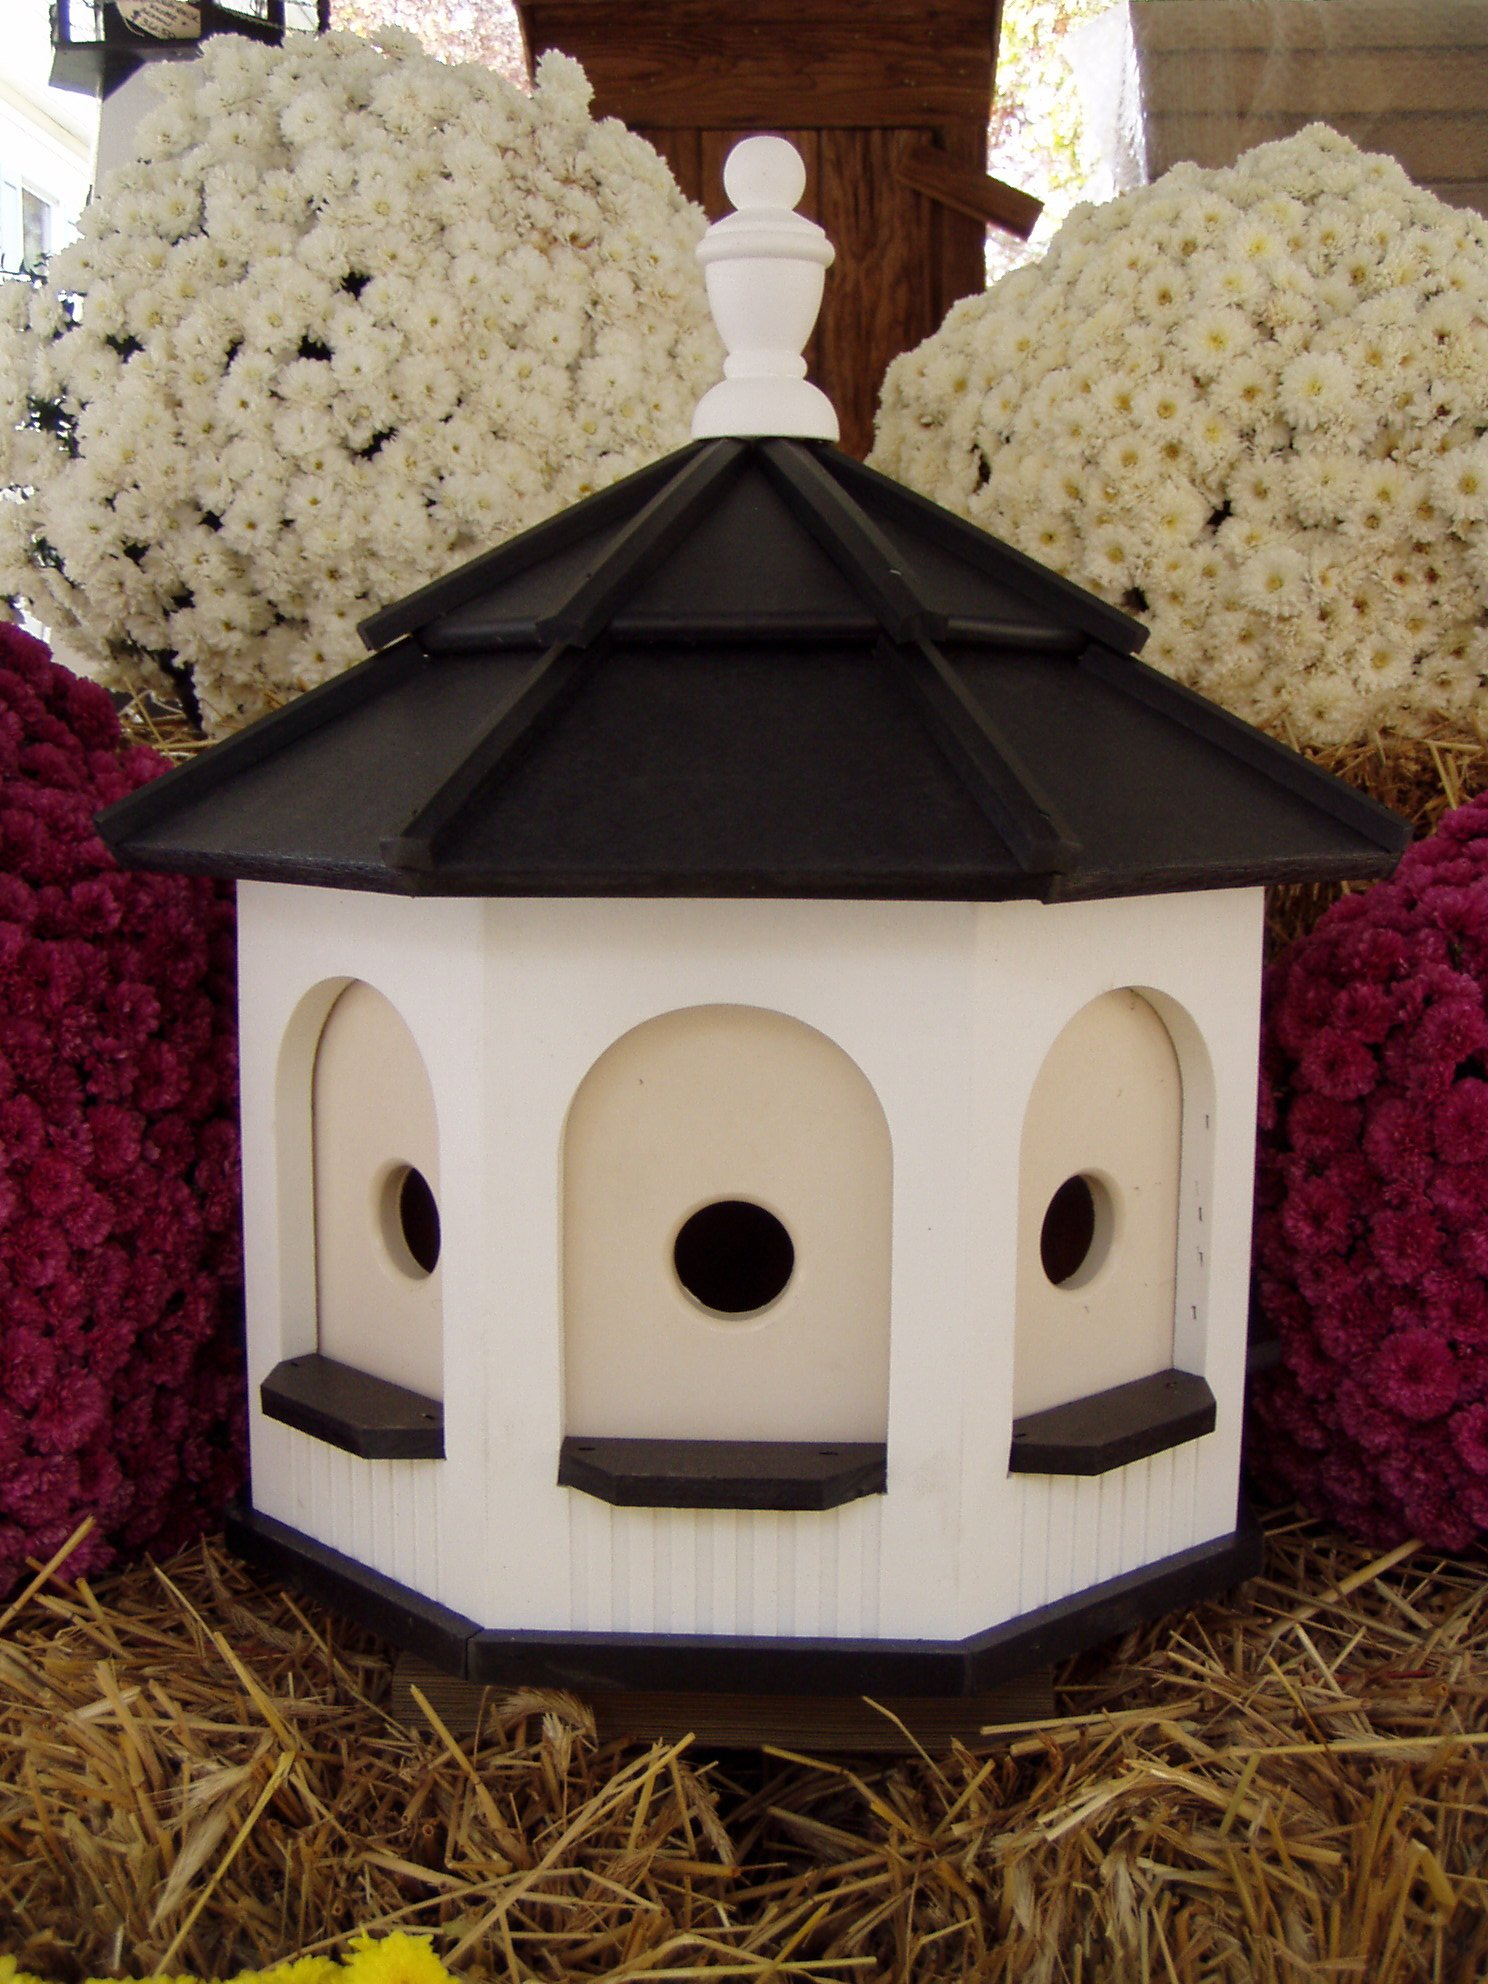 Amish homemade handcrafted Handmade Poly Gazebo Birdhouse yard White & Black Large